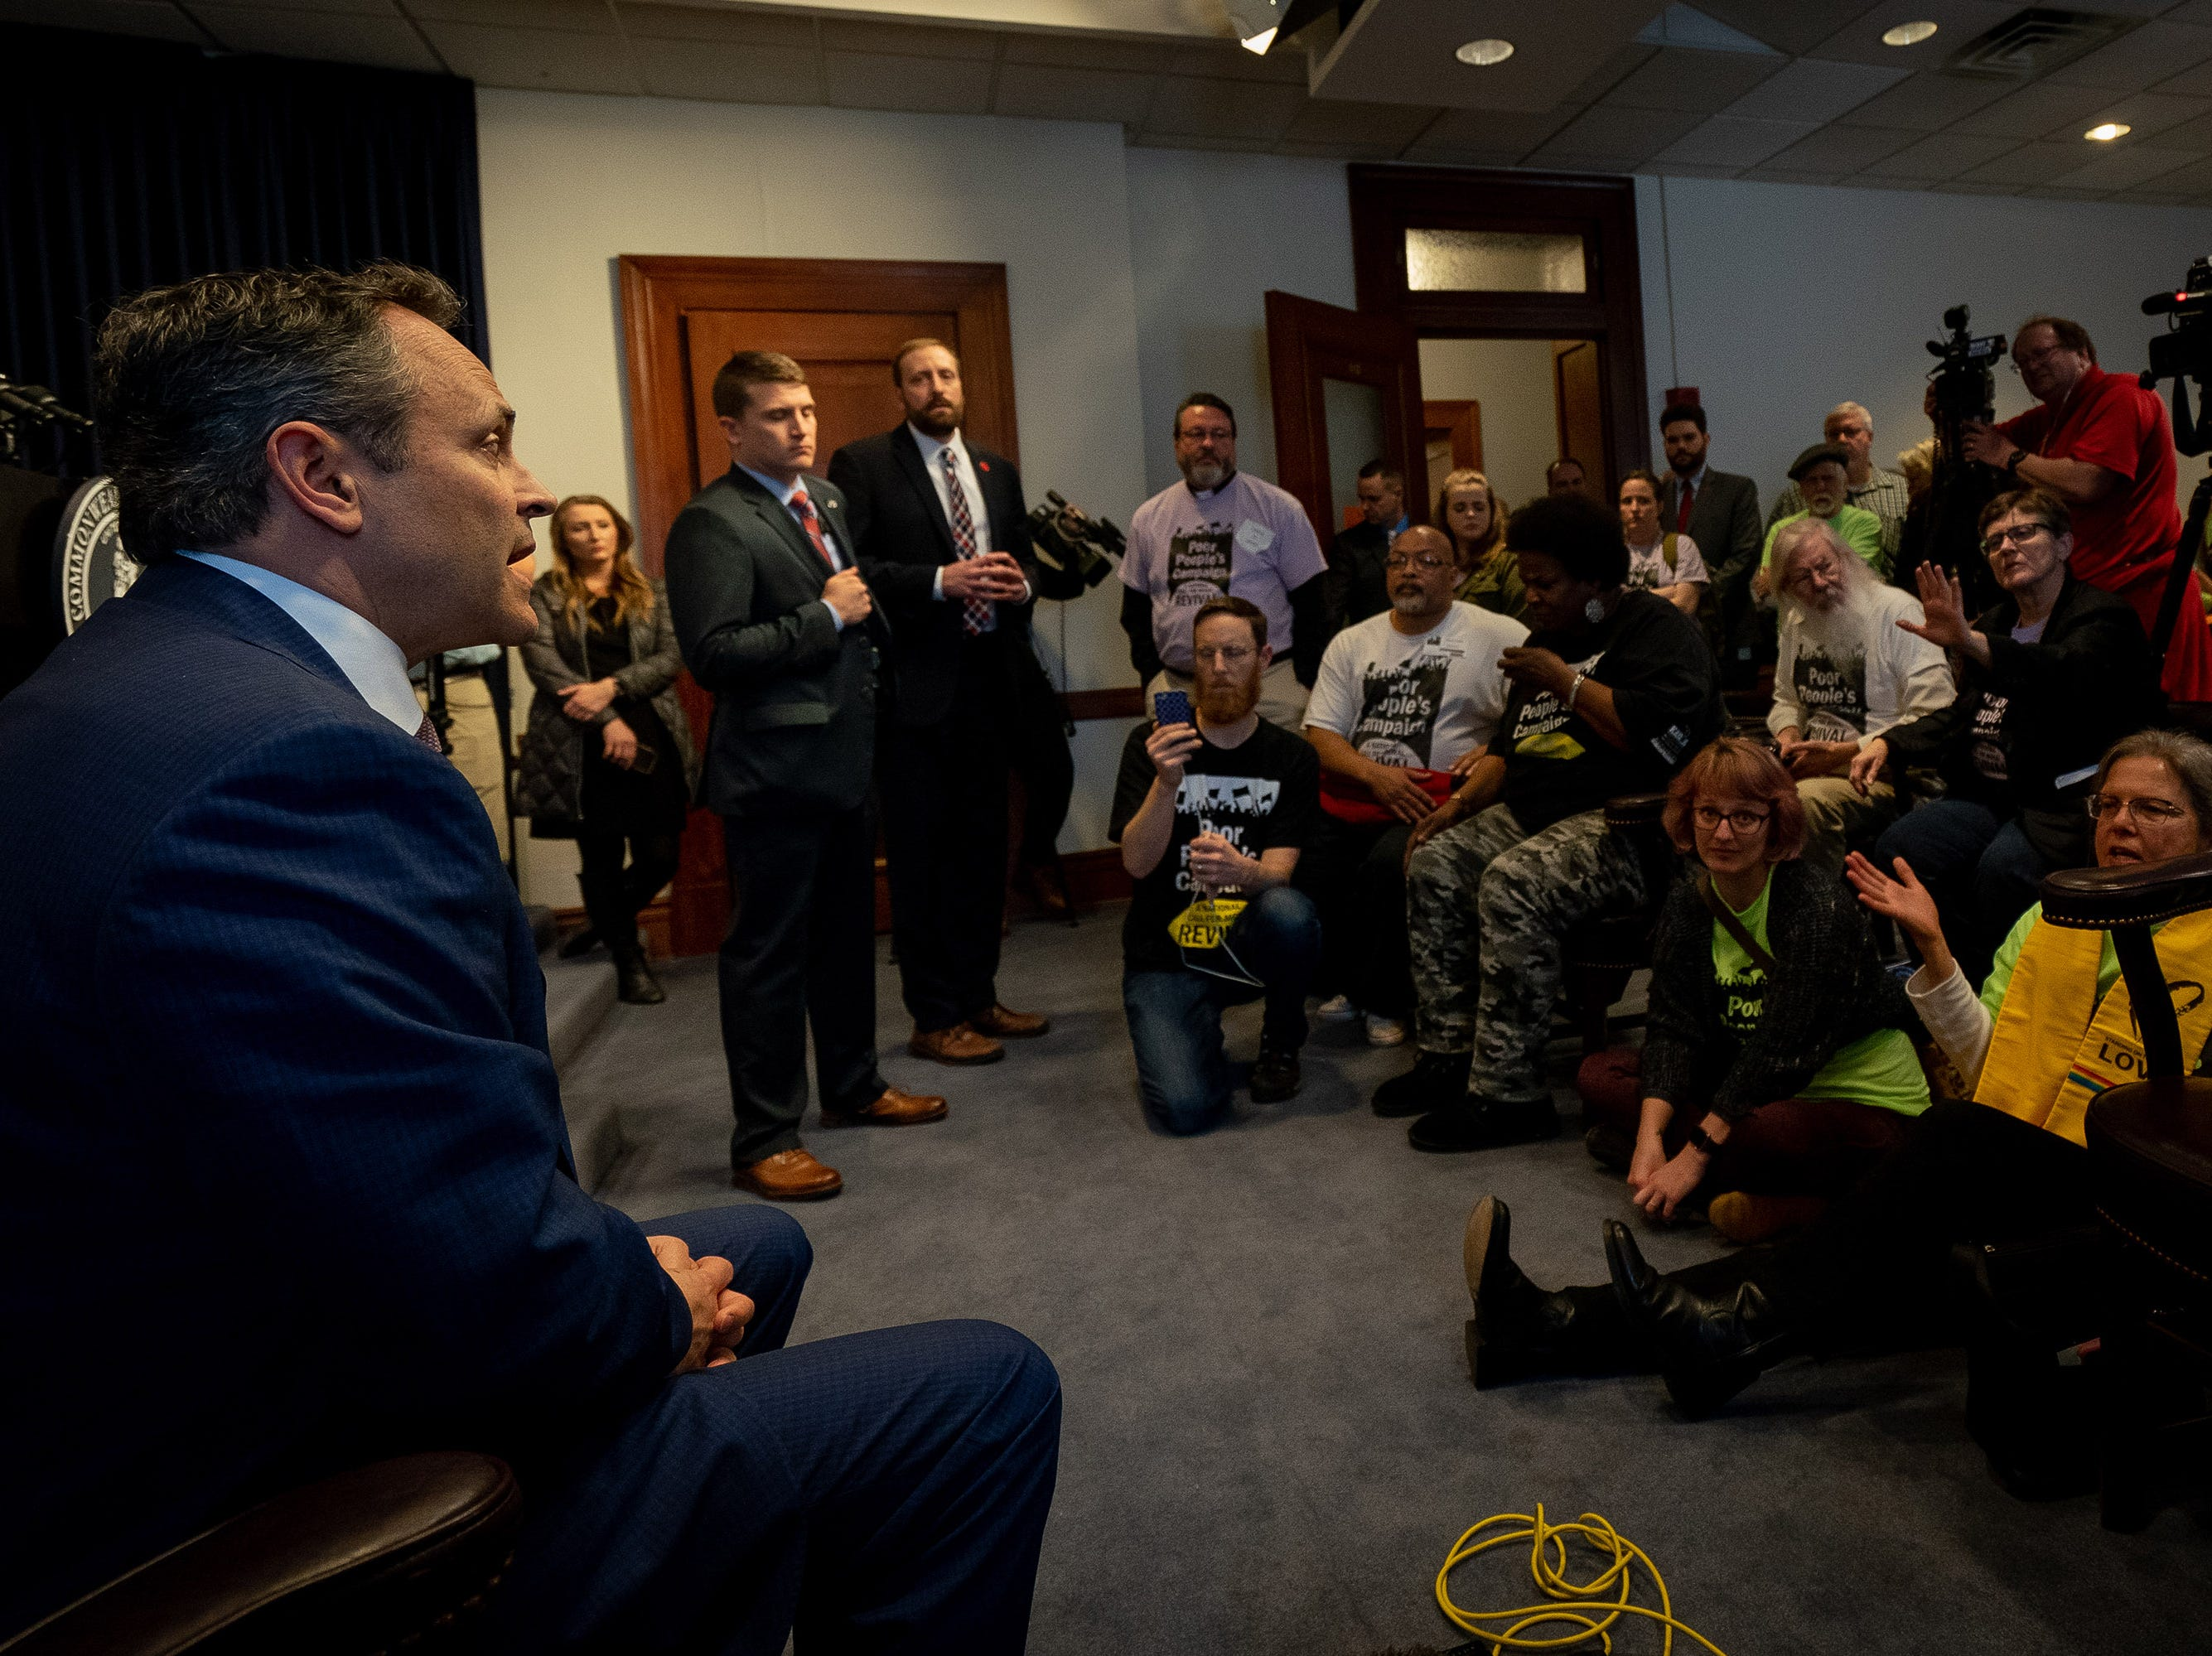 Gov. Matt Bevin meets with members of the Kentucky Poor People's Campaign at the Capitol building in Frankfort, Ky, Tuesday, Feb. 5, 2018